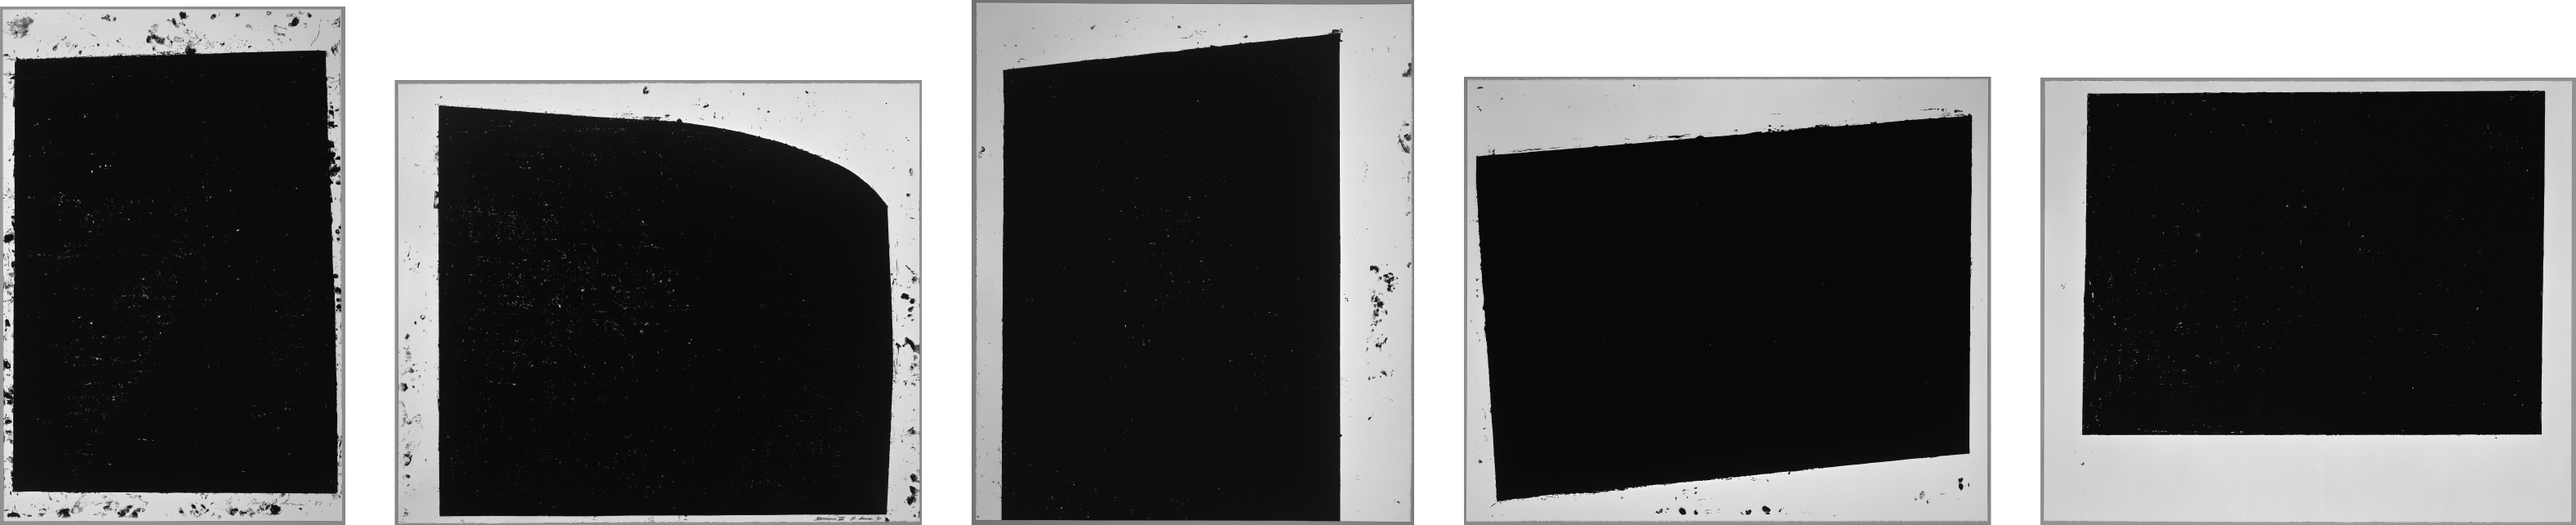 fig.4_Prints from 1981.png